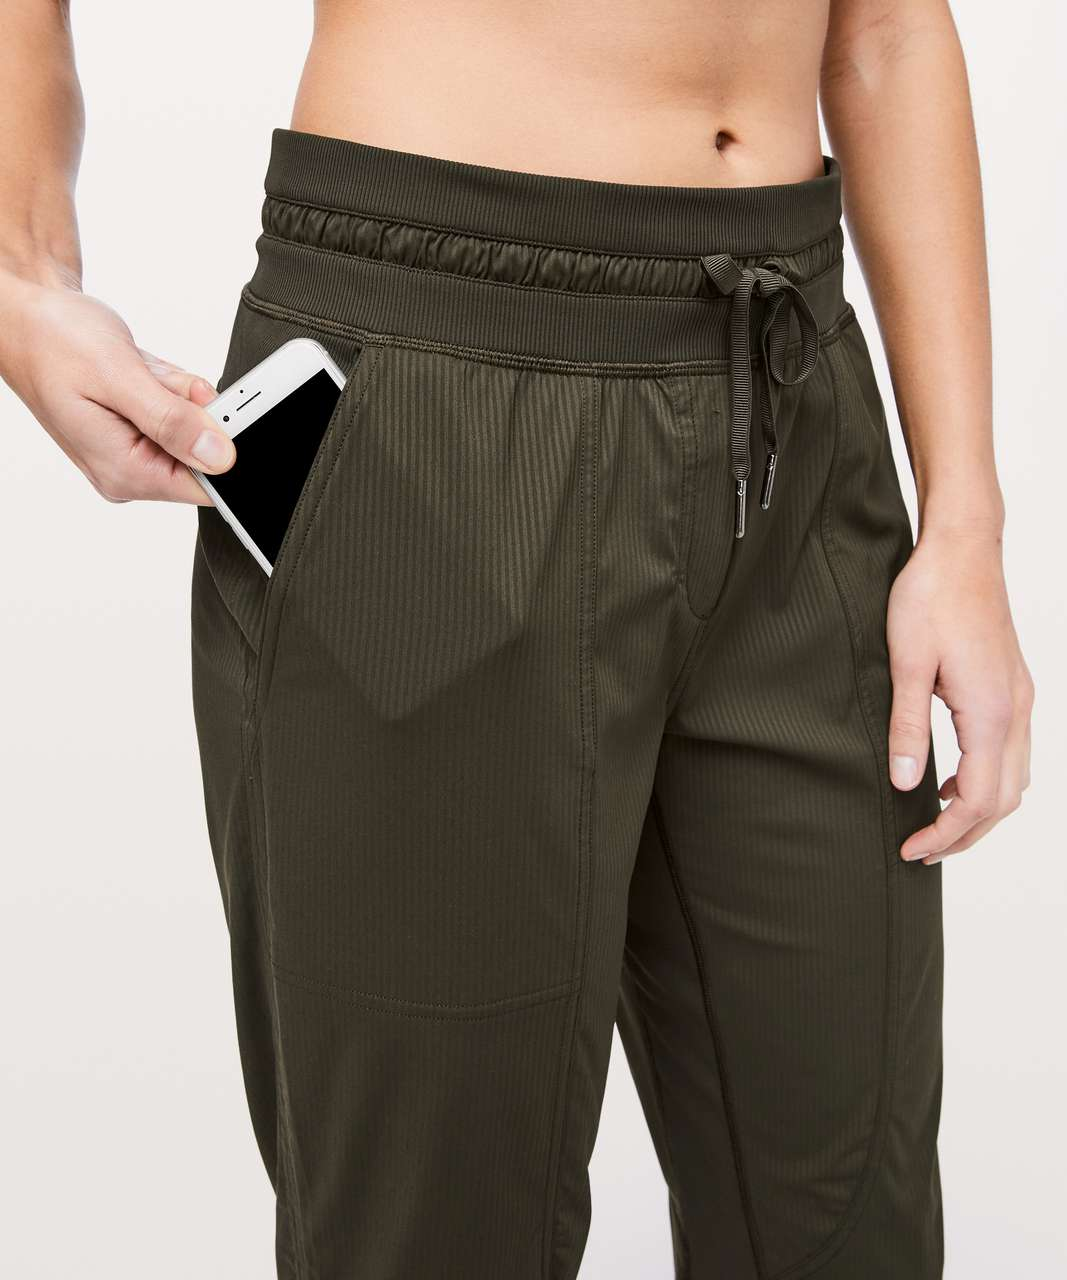 "Lululemon Dance Studio Crop *25"" - Dark Olive"